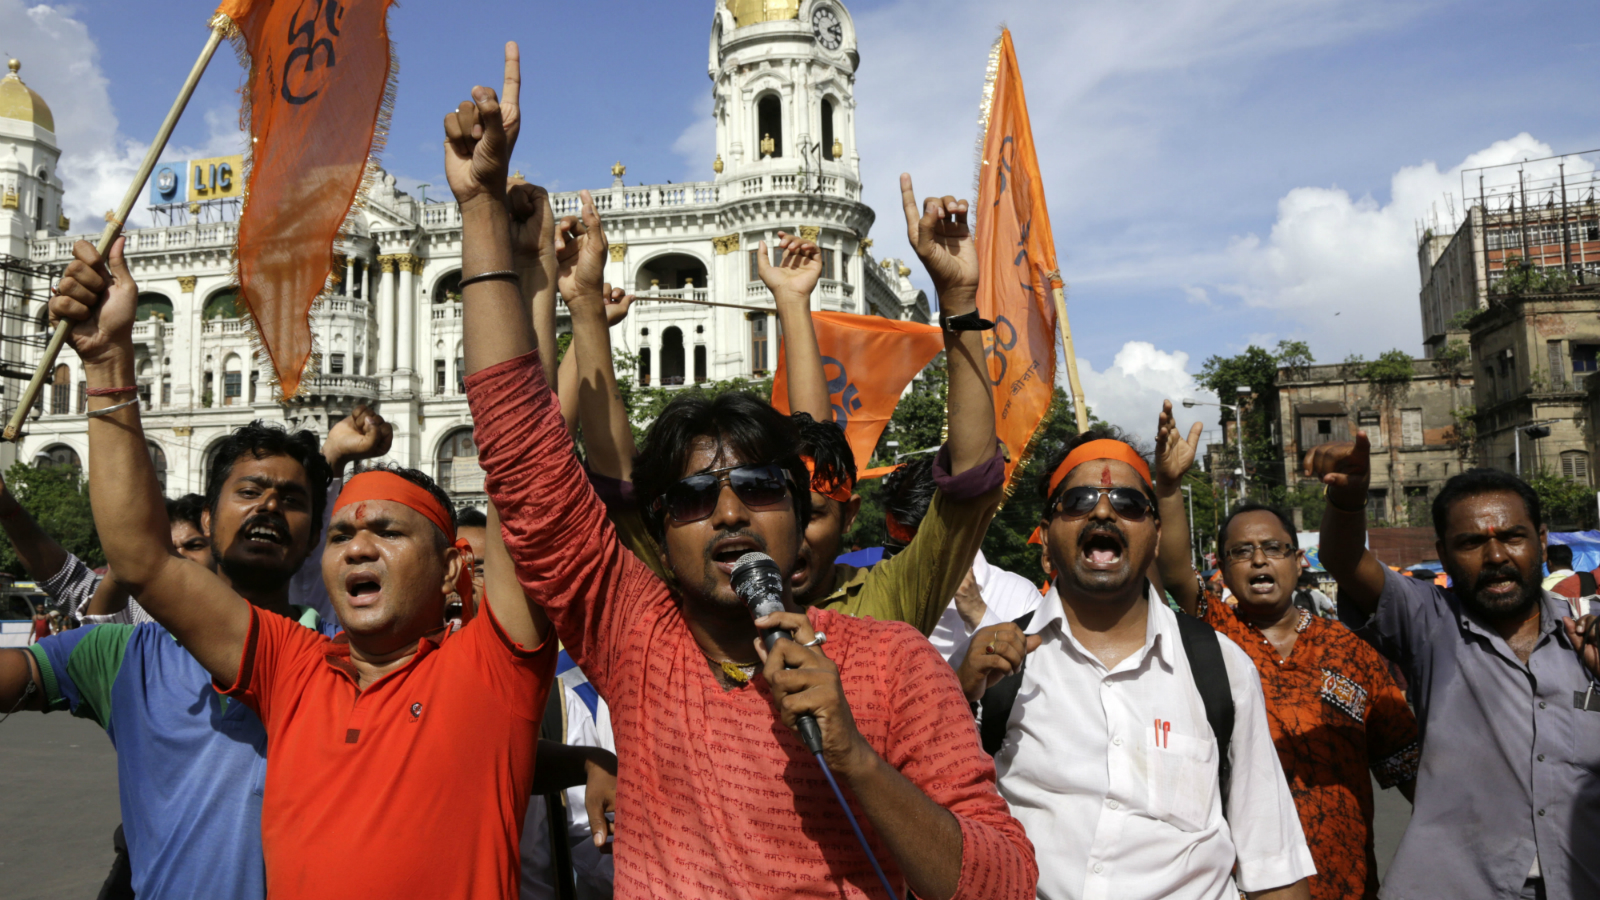 Activists of Hindu Jagaran Manch, a Hindu right wing organization promoting indigenous products, shout slogans during a protest rally against alleged persecution of Hindu minorities in Bangladesh, in Kolkata, India, Thursday, June 30, 2016. Hindu community leaders in Bangladesh have expressed fears as a growing sense of insecurity has forced many to take refuge in neighboring India, according to news reports.